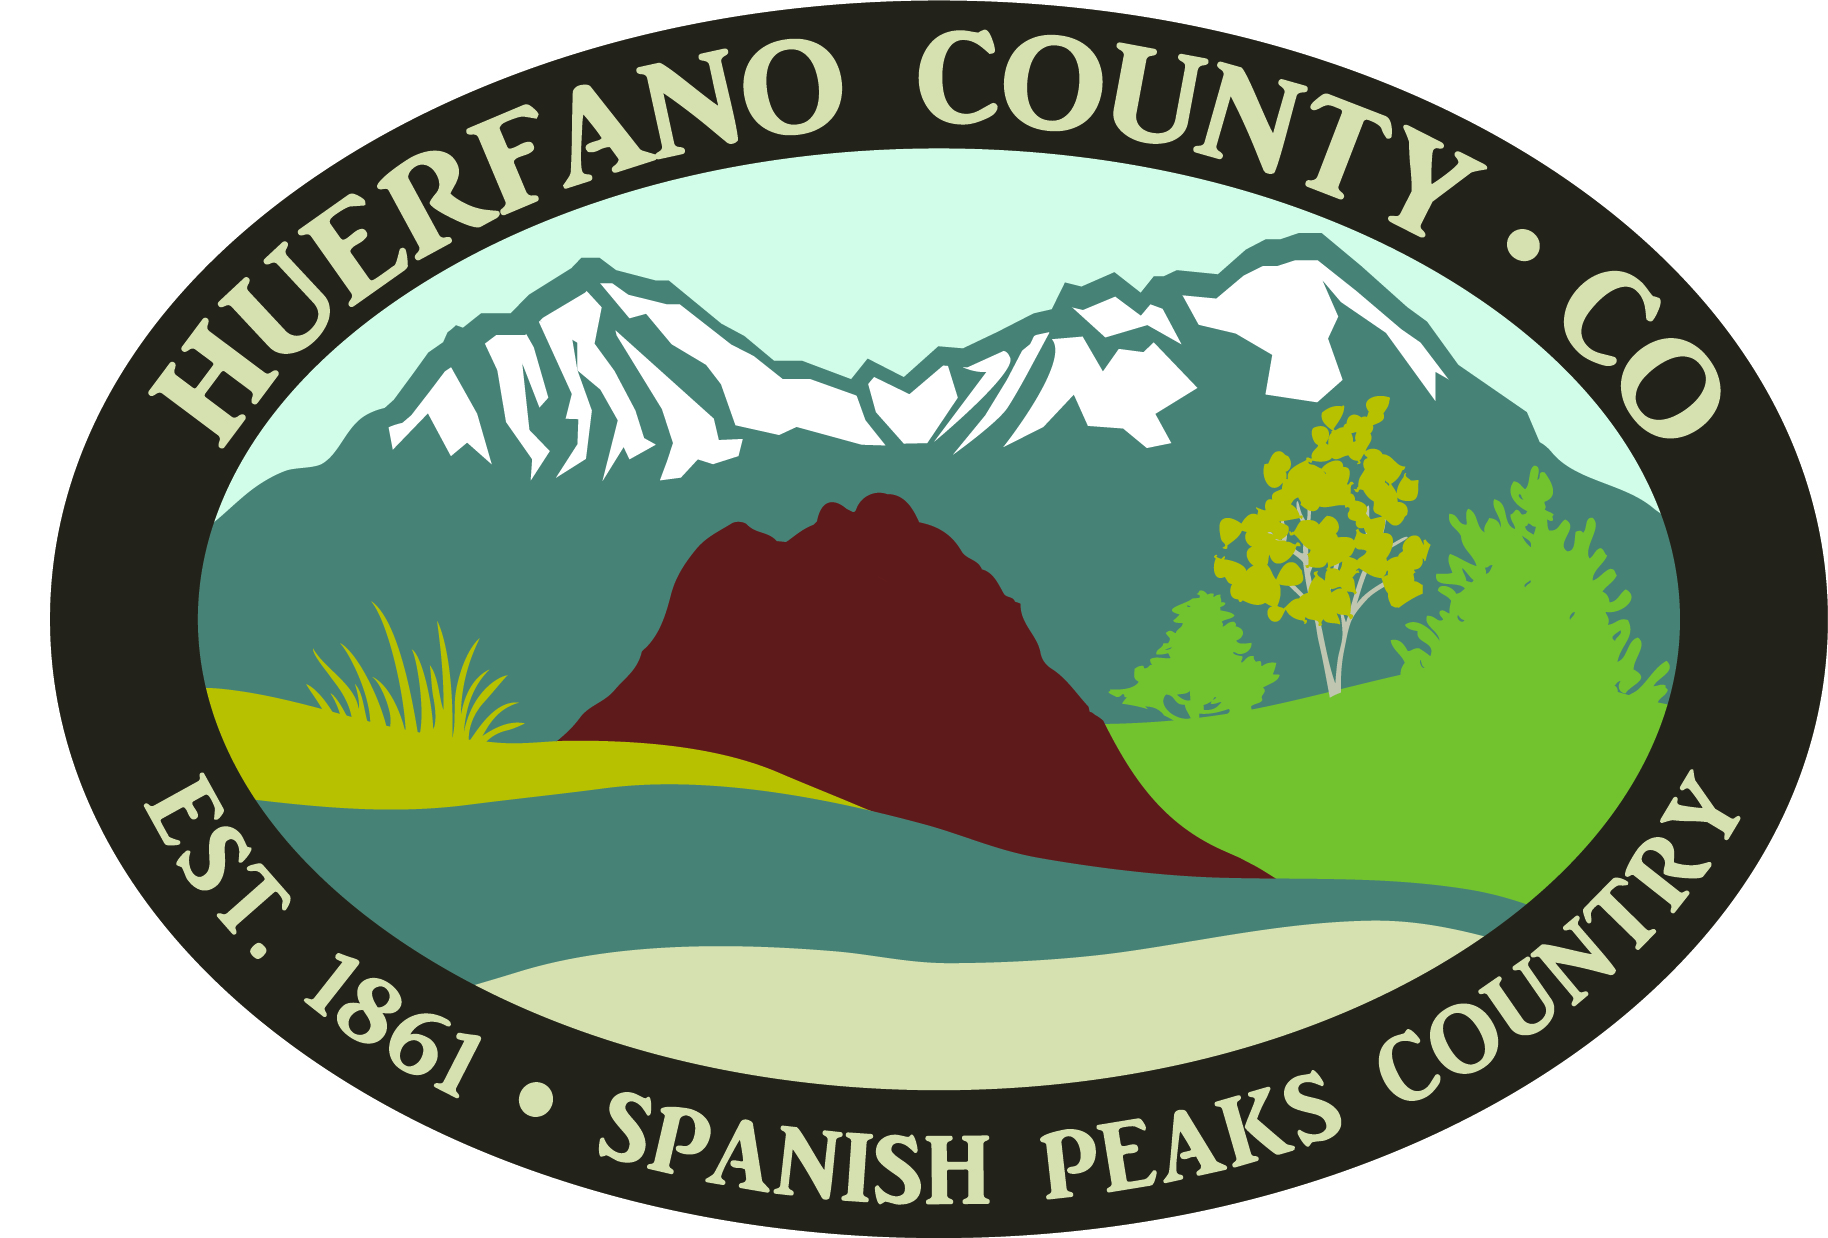 Organization logo of Huerfano County Government